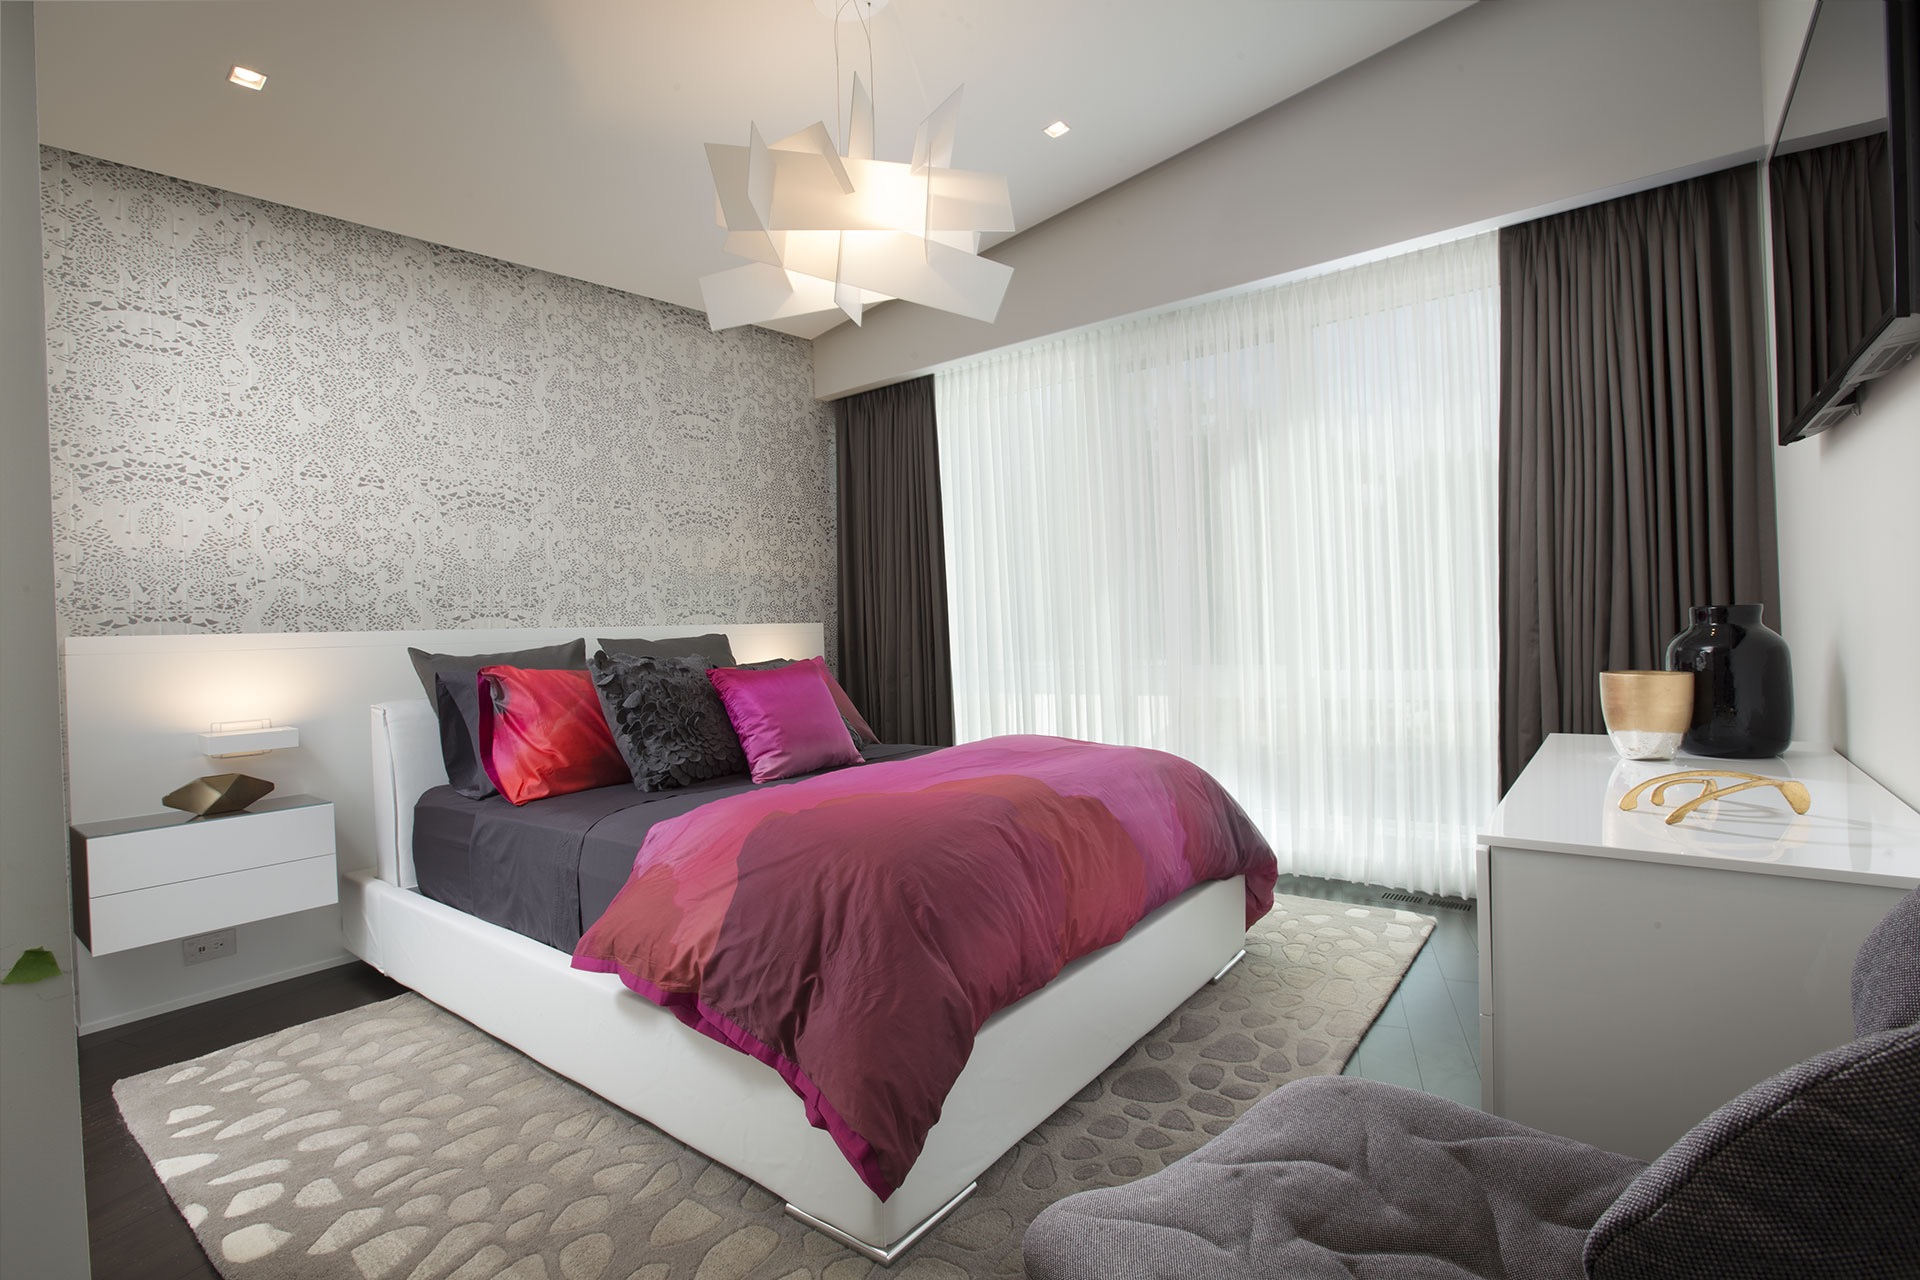 Modern Gray Bedroom With Pink Duvet (View 3 of 22)